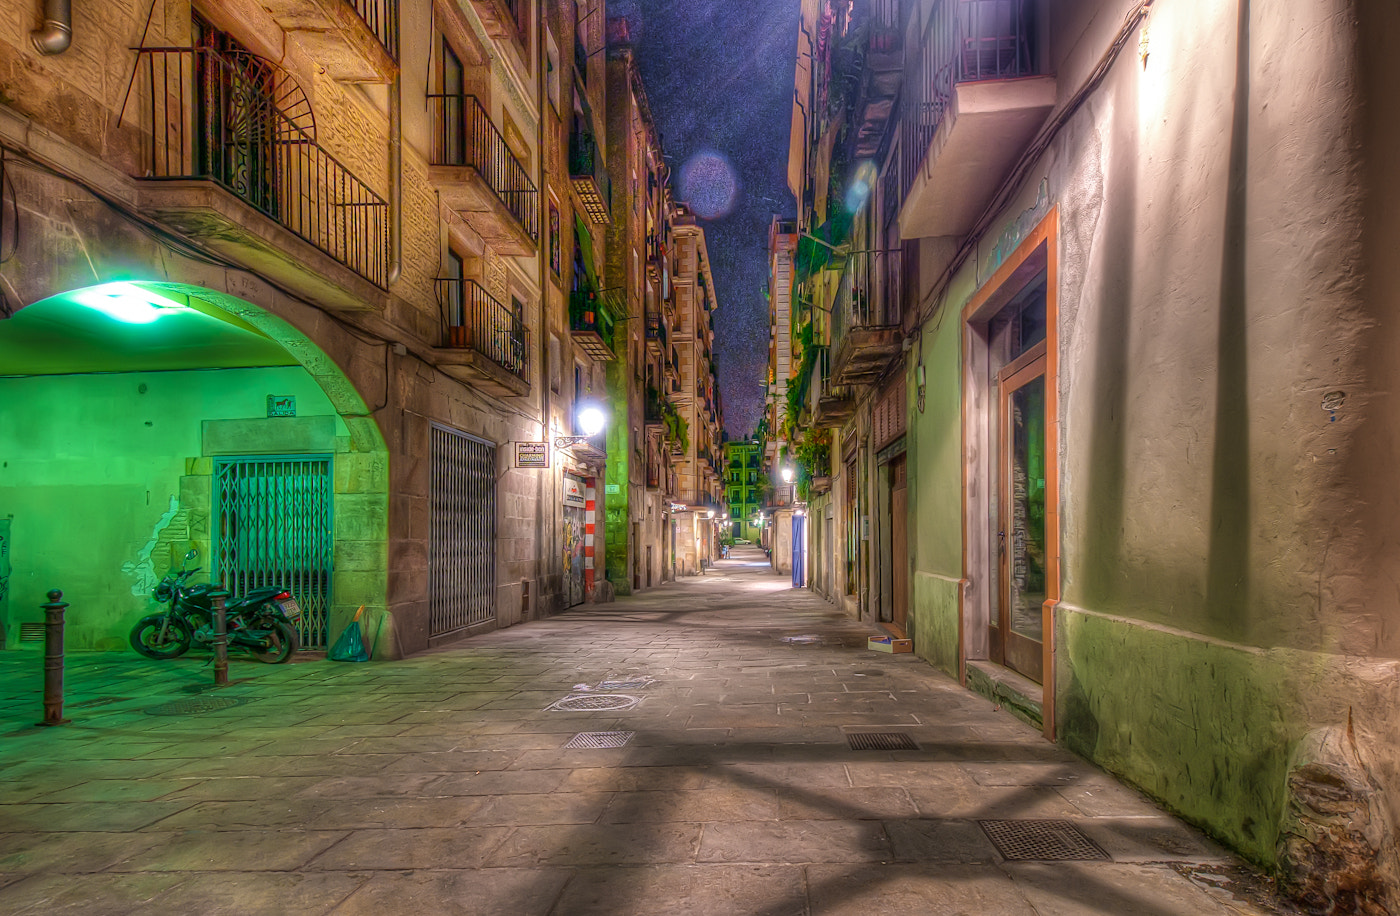 Photograph Barcelona by Paul Werner Suess on 500px